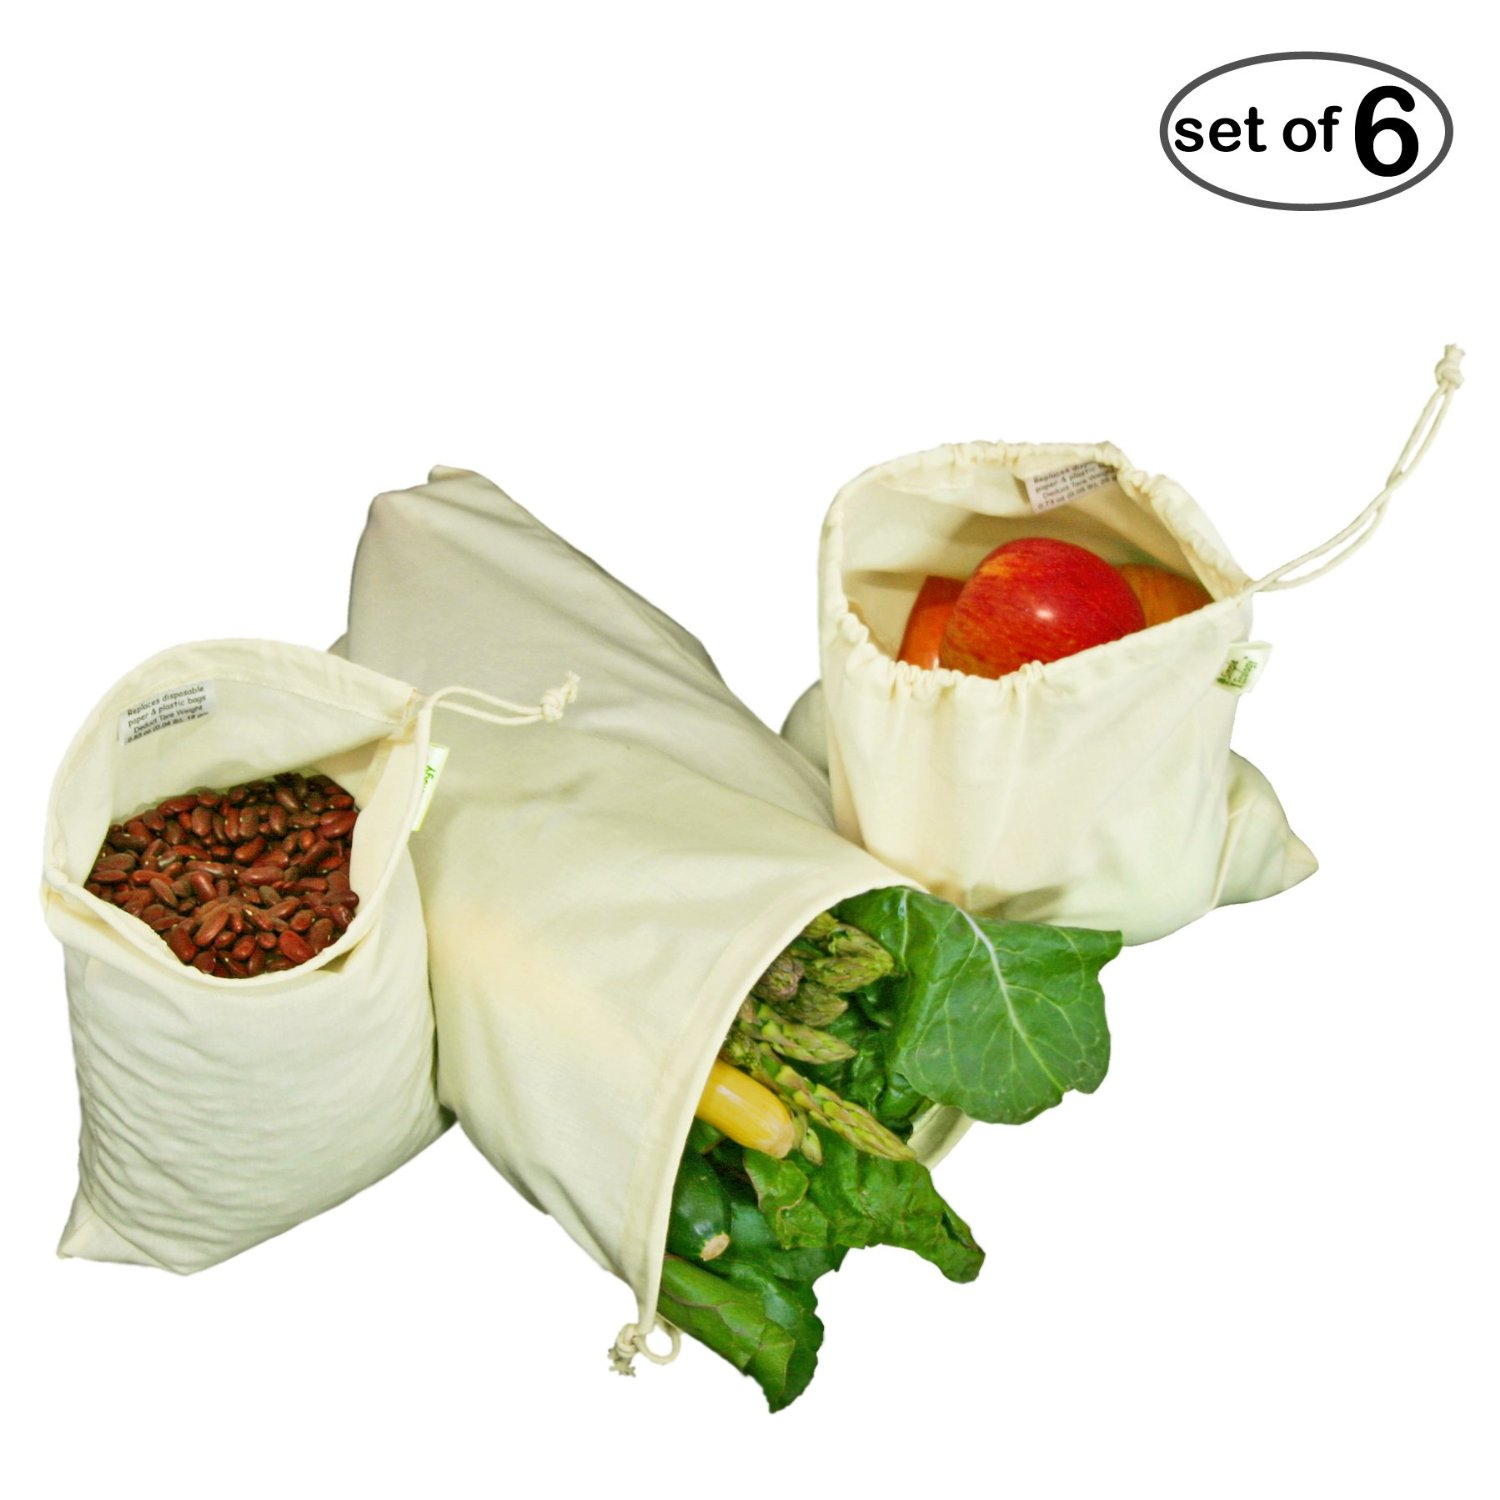 Great way to avoid the single-use product bags. Awesome for produce AND bulk finds.